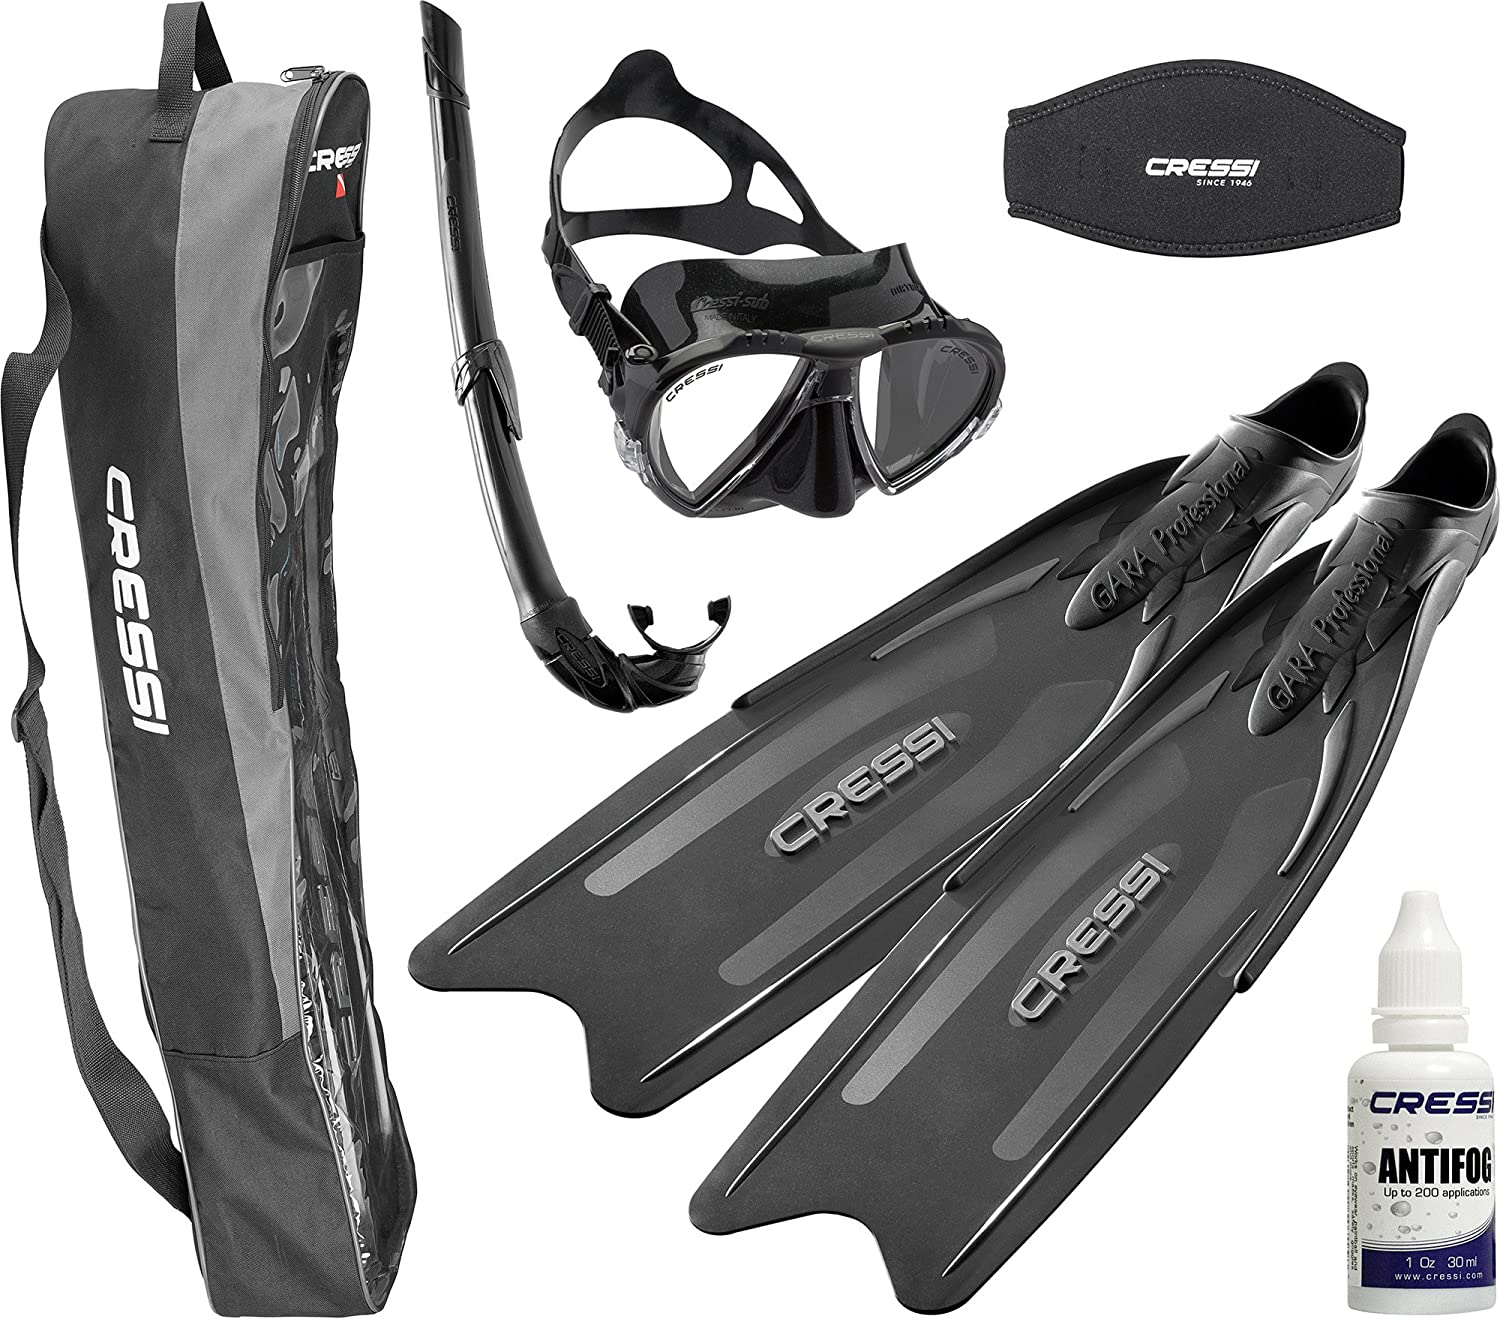 Top 5 Best Snorkel Sets for Any Trip (2020 Reviews & Buying Guide) 4